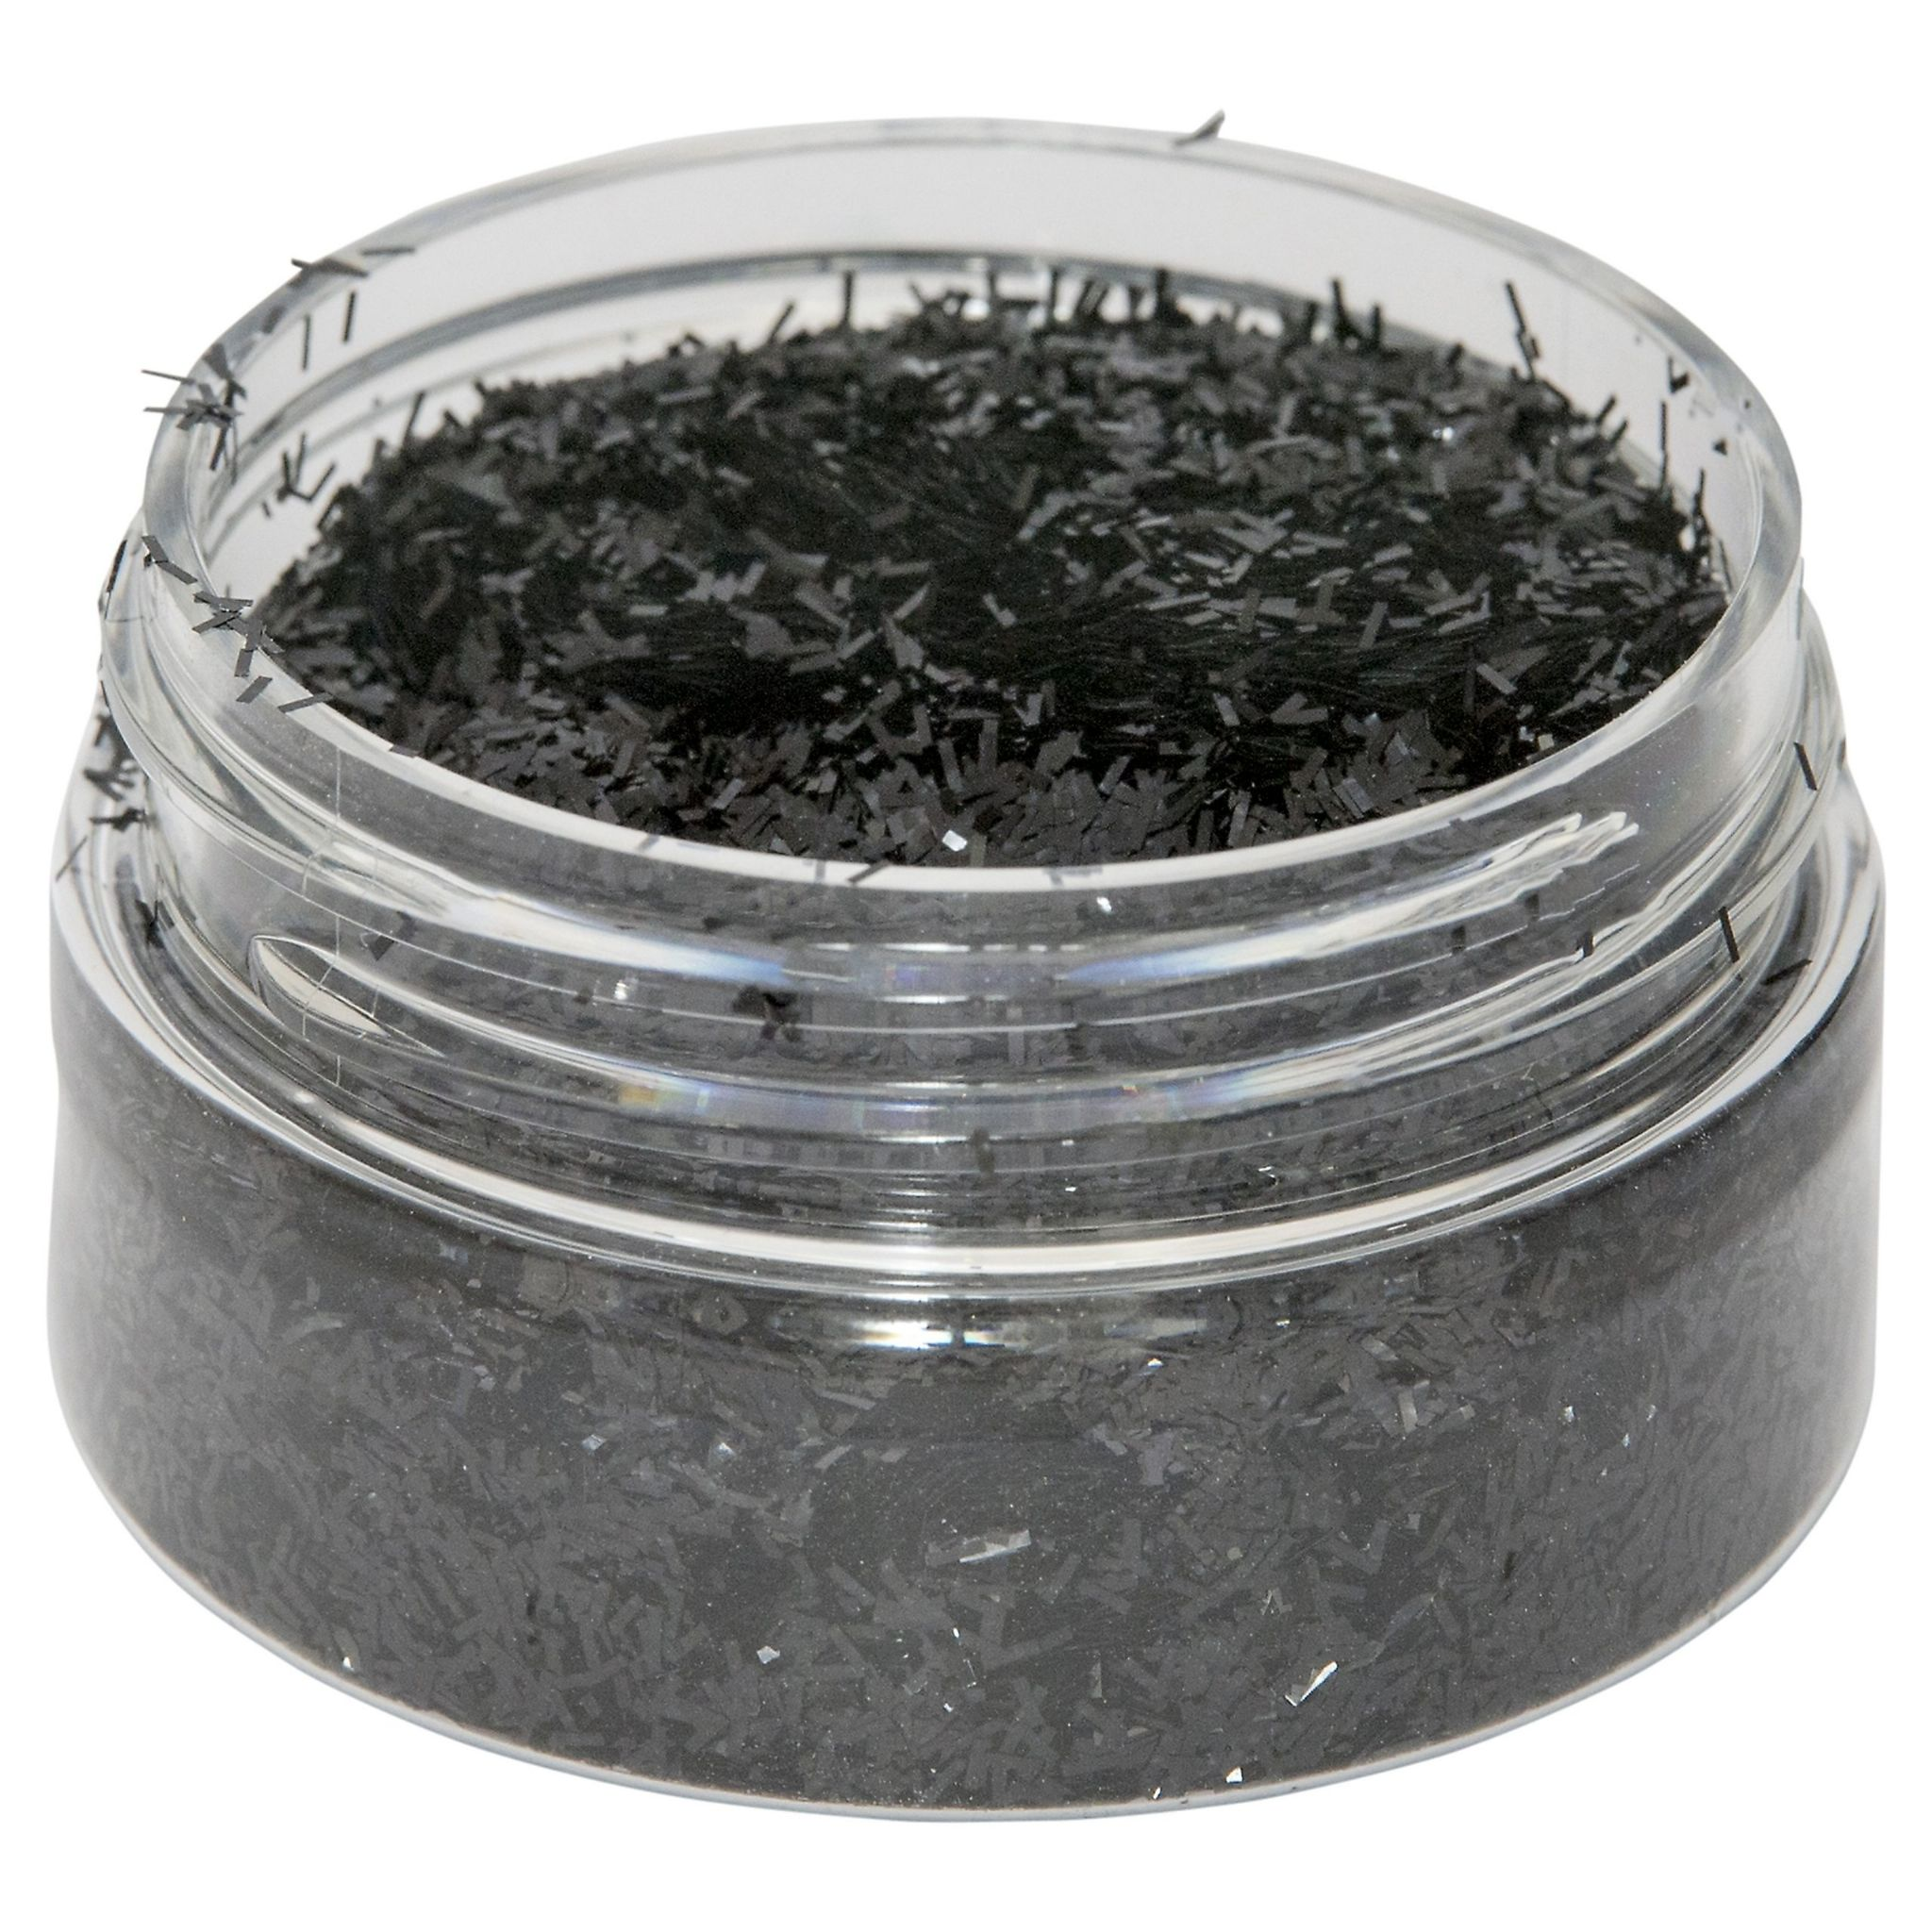 Cosmic Shimmer Glitter Jewels Nebula Ice